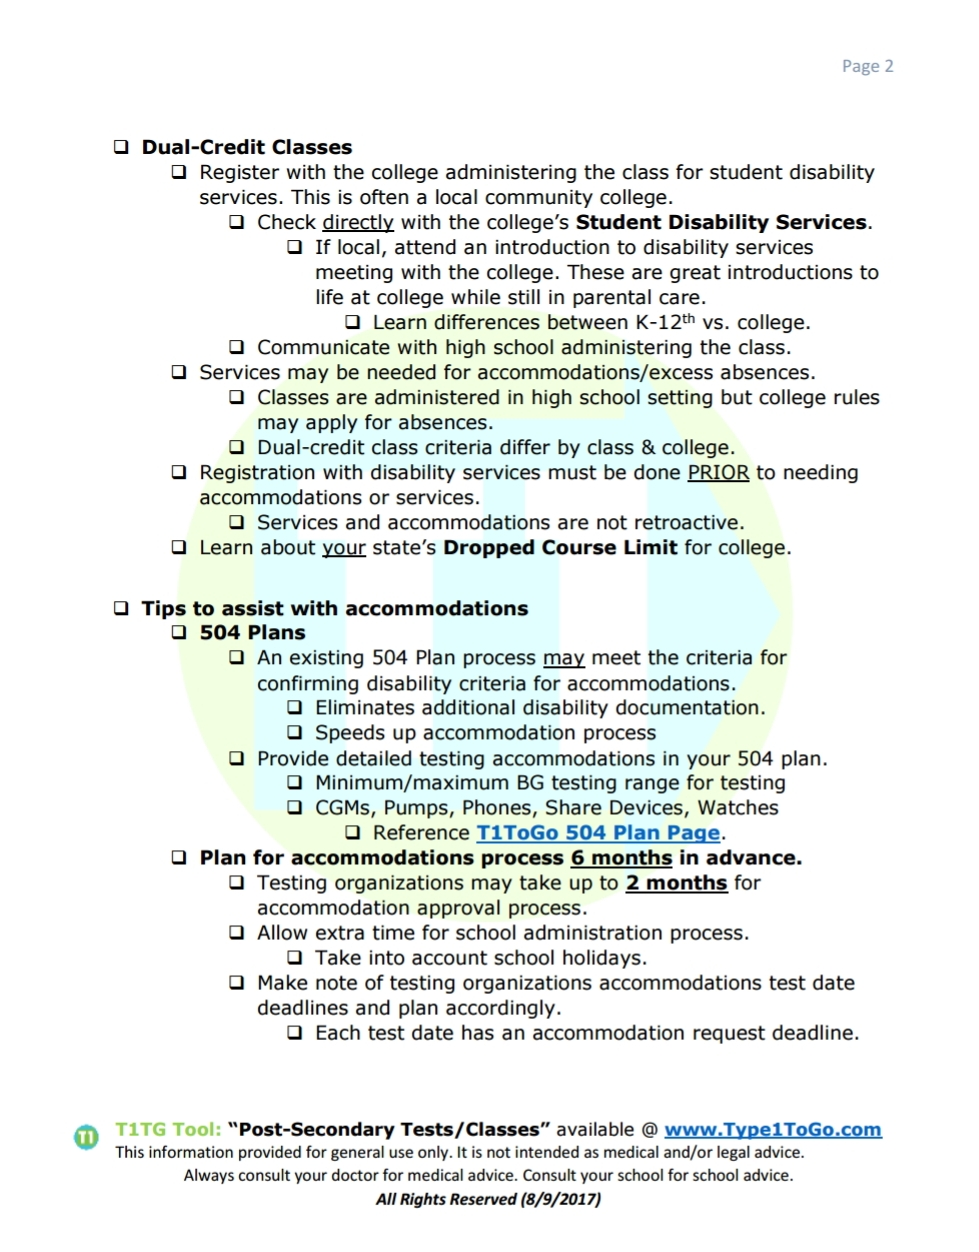 Handout for ACT & SAT Testing accommodations for Type 1 Diabetic Students.